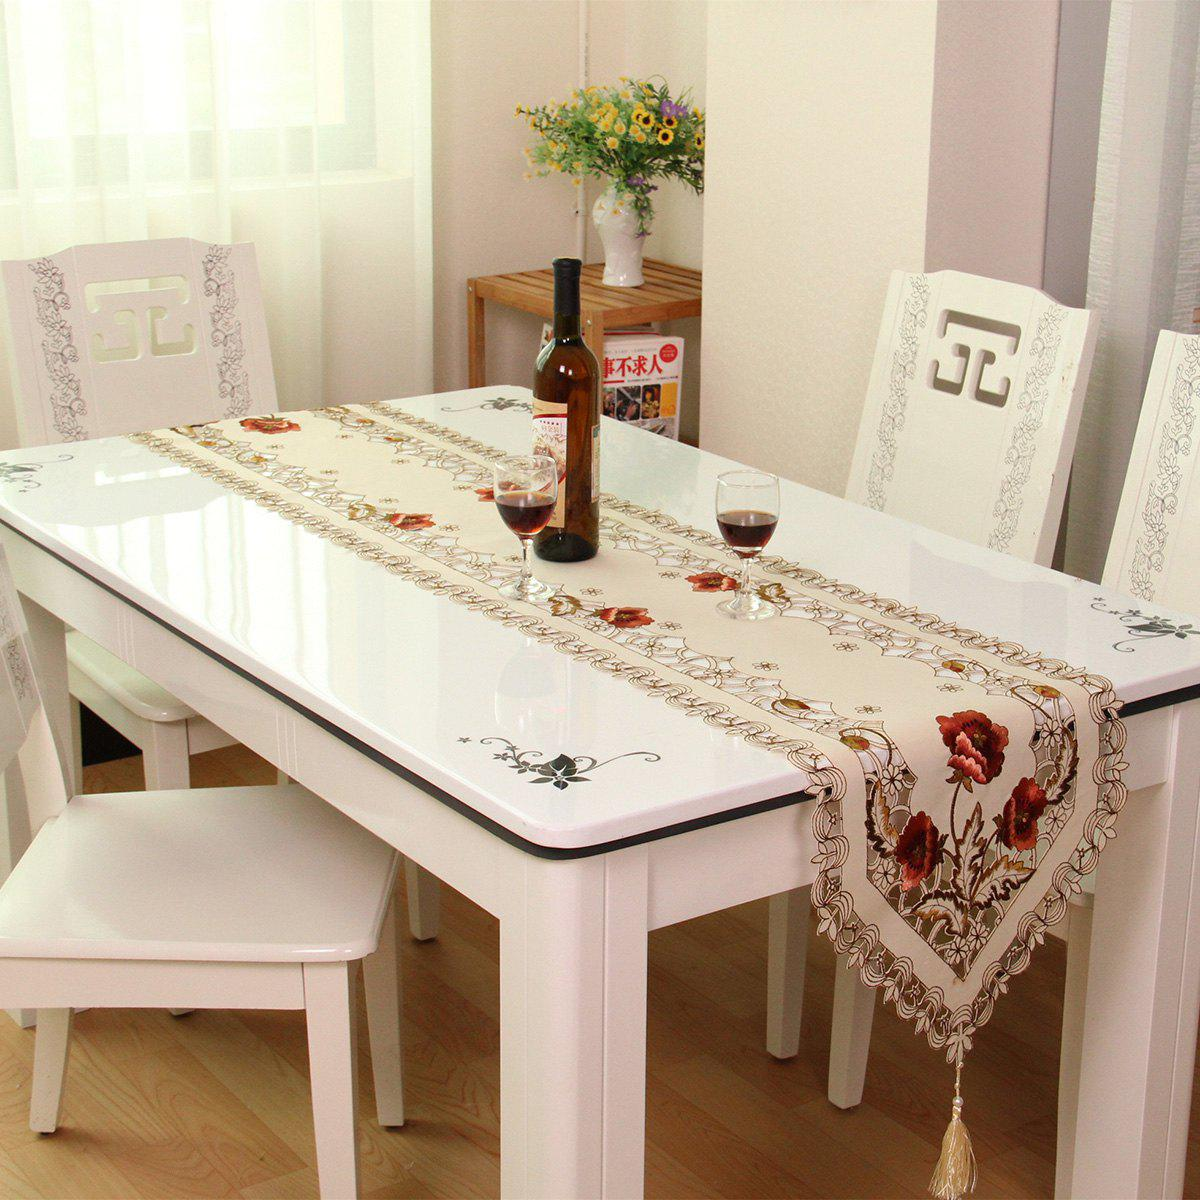 Home Decor Embroidered Satin Hollow Out Table RunnerHOME<br><br>Size: 40*250CM; Color: PALOMINO; Type: Table Runner; Material: Satin; Pattern Type: Embroidered,Floral; Weight: 0.1750kg; Package Contents: 1 x Table Runner;